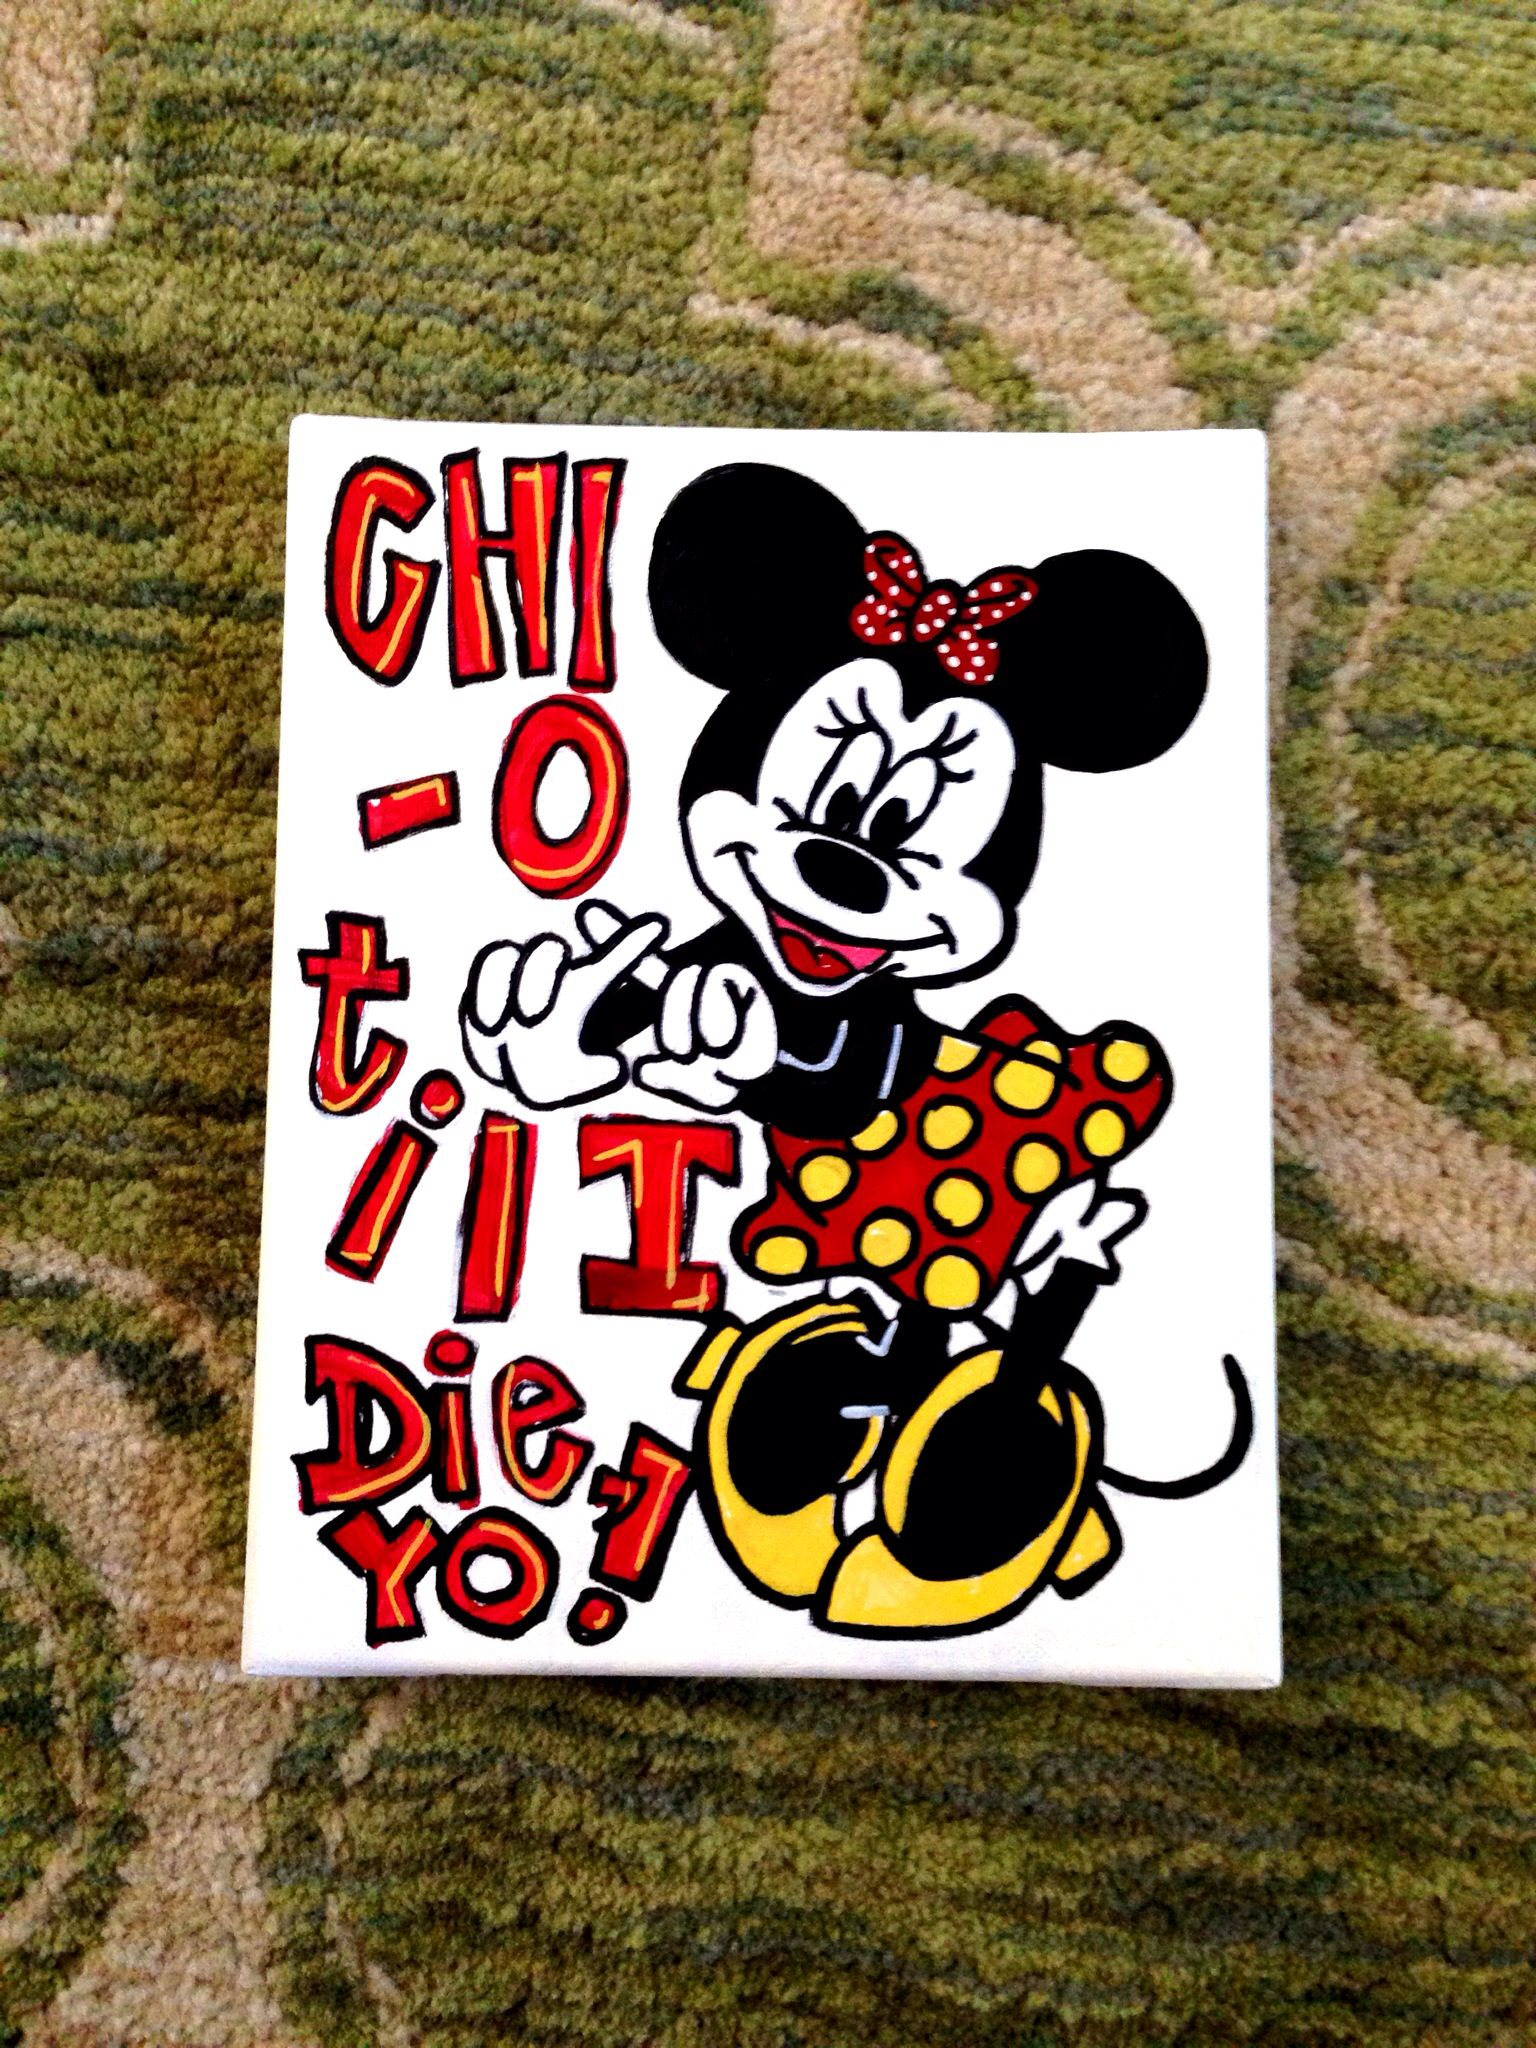 Still obsessed with my Chi O Disney crafts